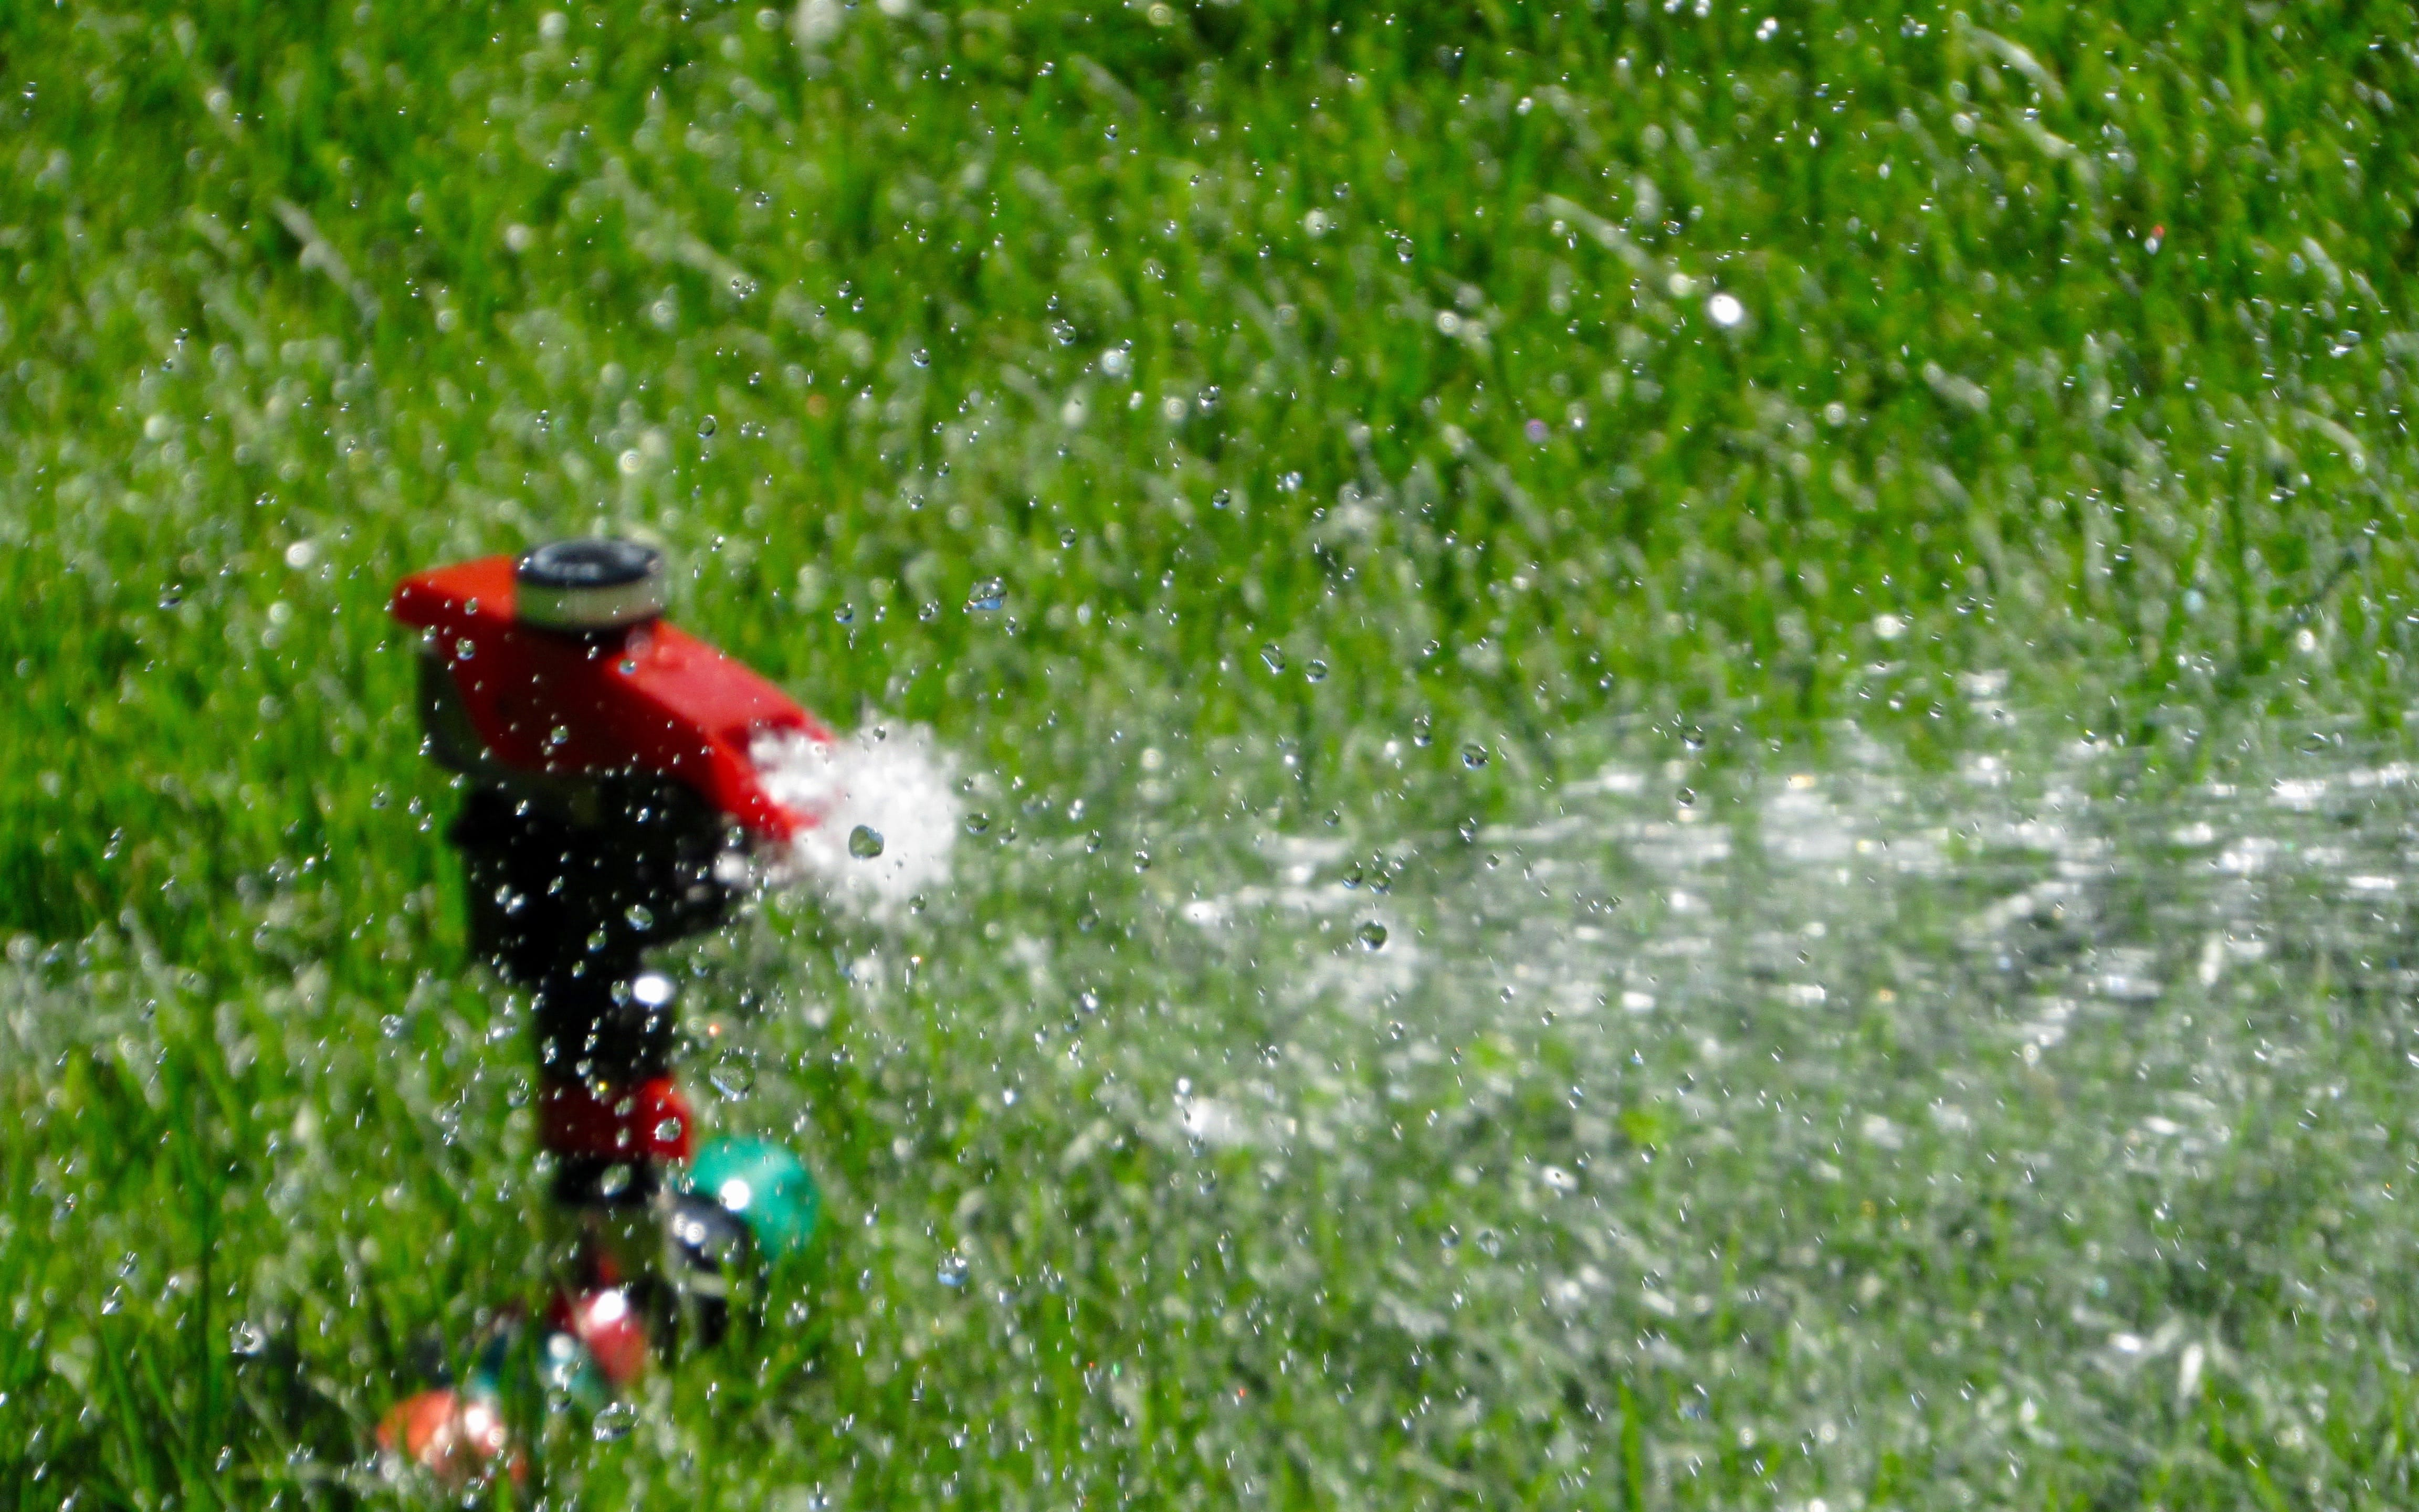 Irrigation ban, burn ban in effect for Spring Hill due to recent lack of rainfall